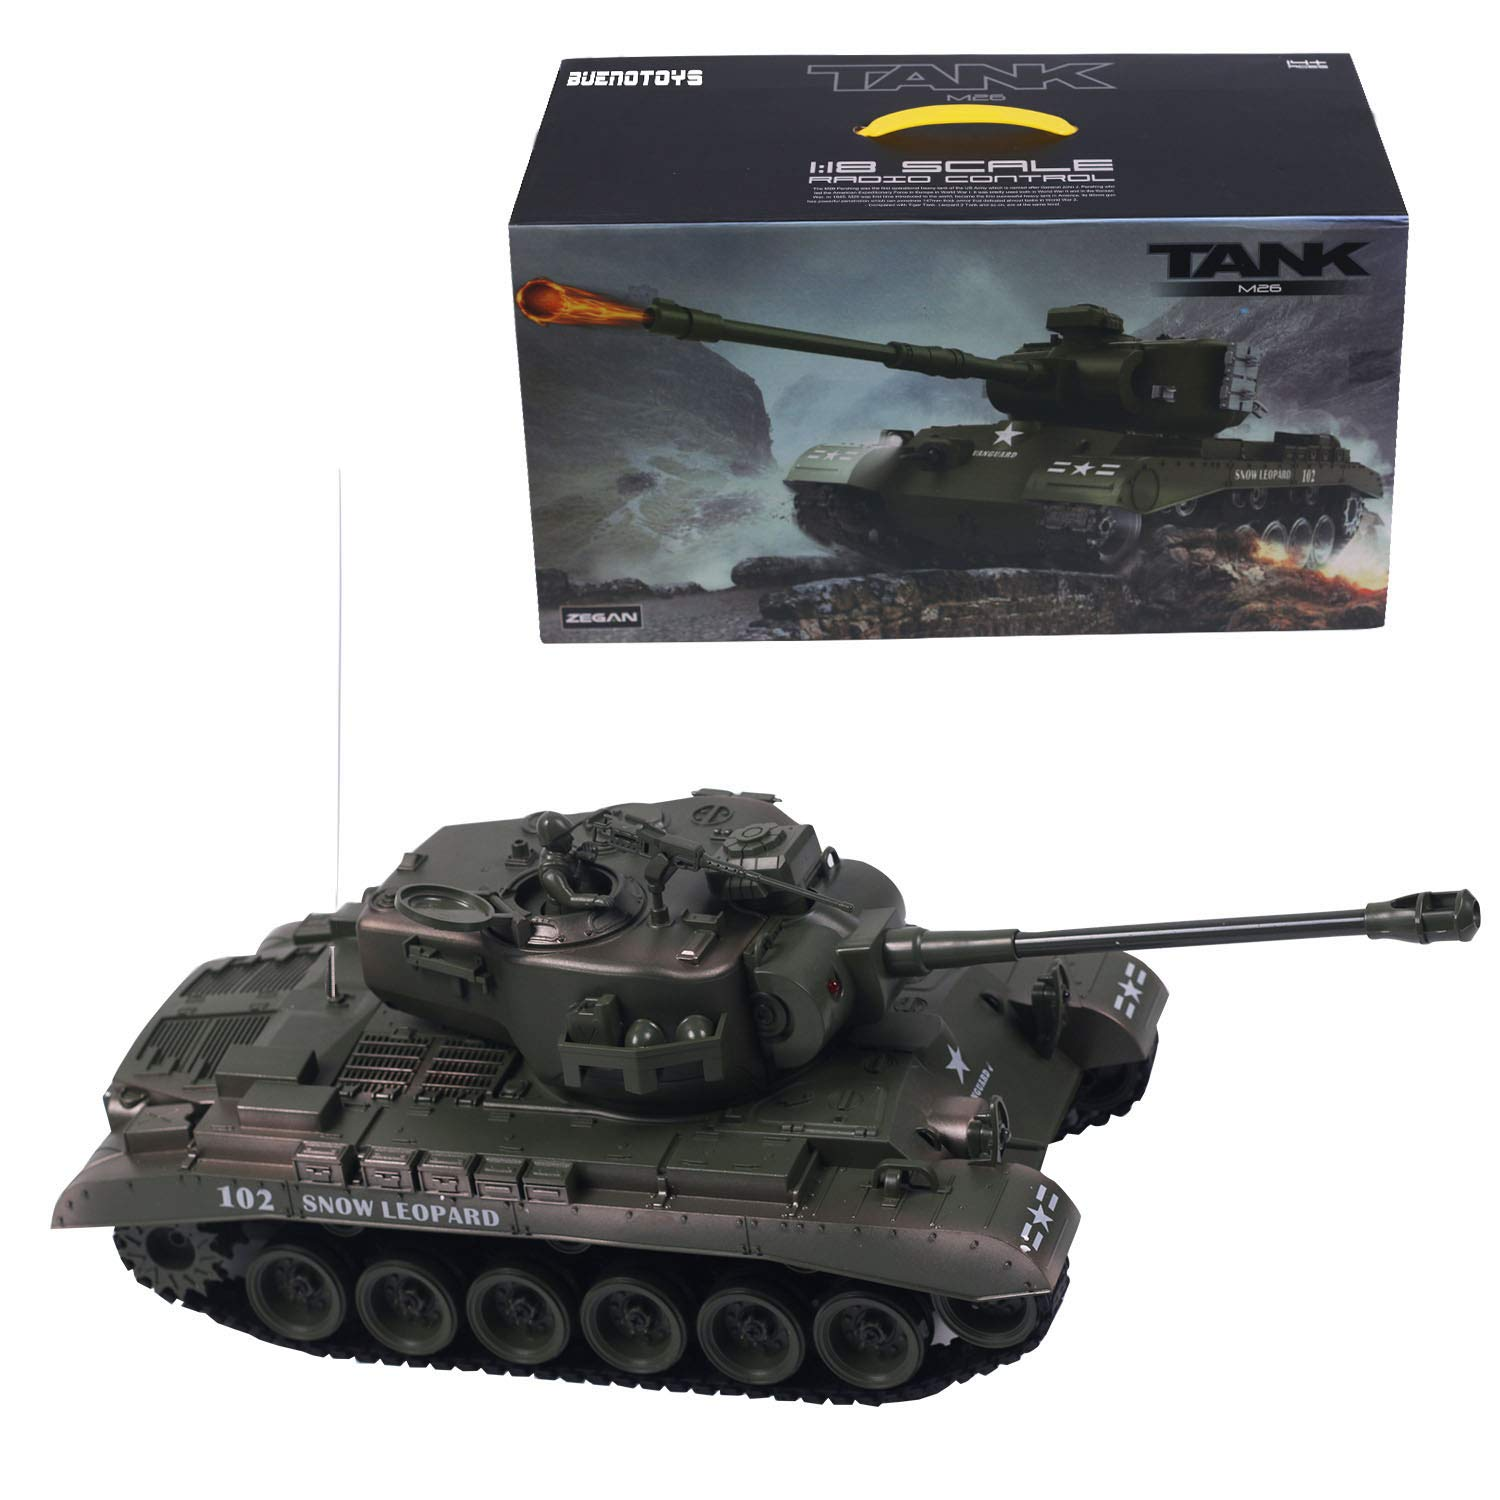 Buenotoys 1:18 RC Tank Remote Control Power Military Battle Tank with  Engine Sound, 3 Speed ,The Turret is up and Down, Left and Right Adjustable  and